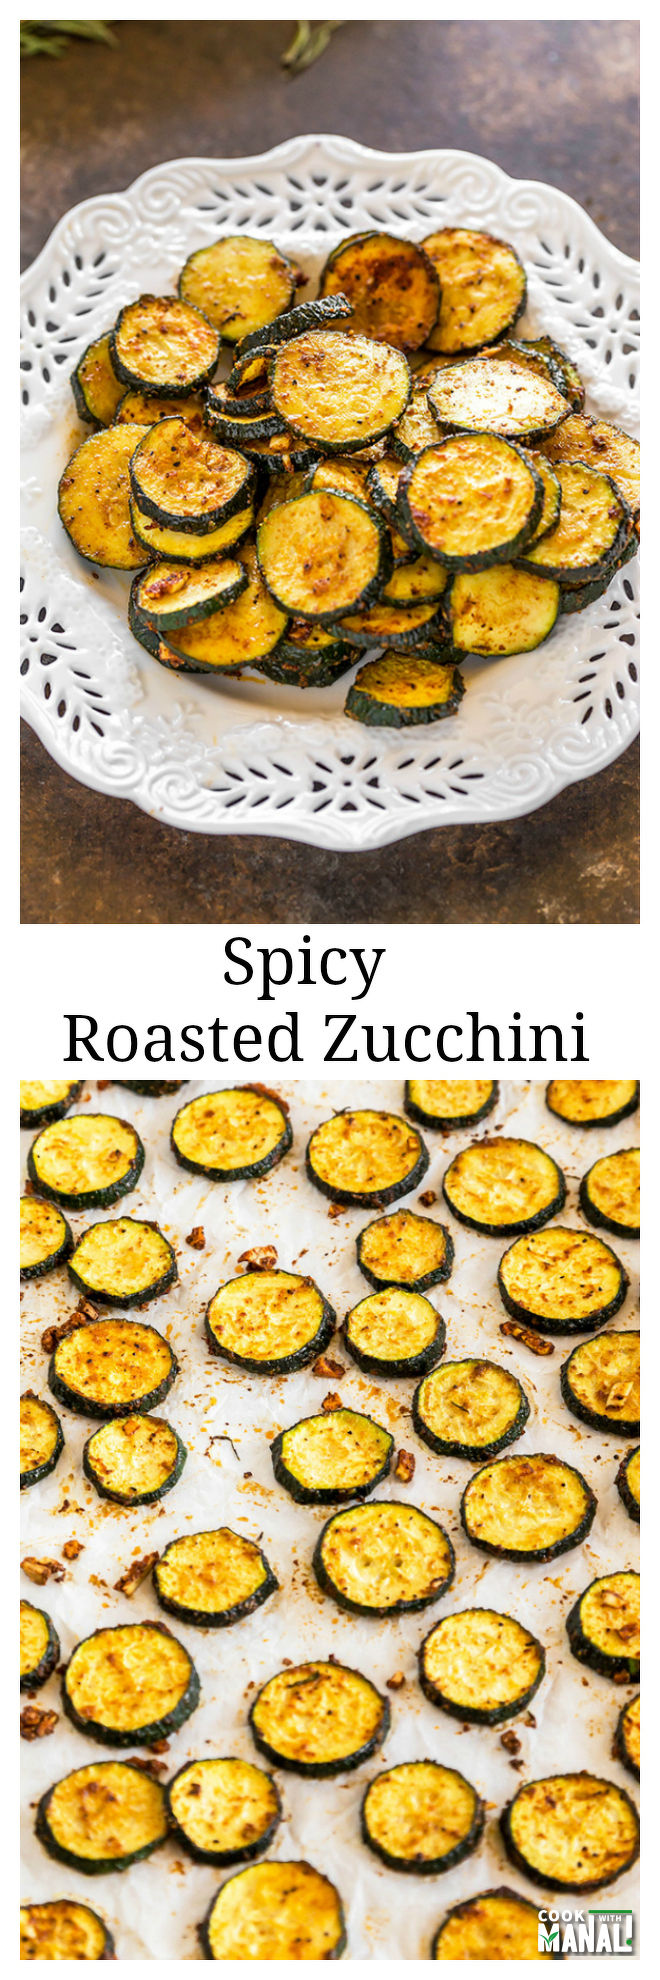 spicy-roasted-zucchini-collage